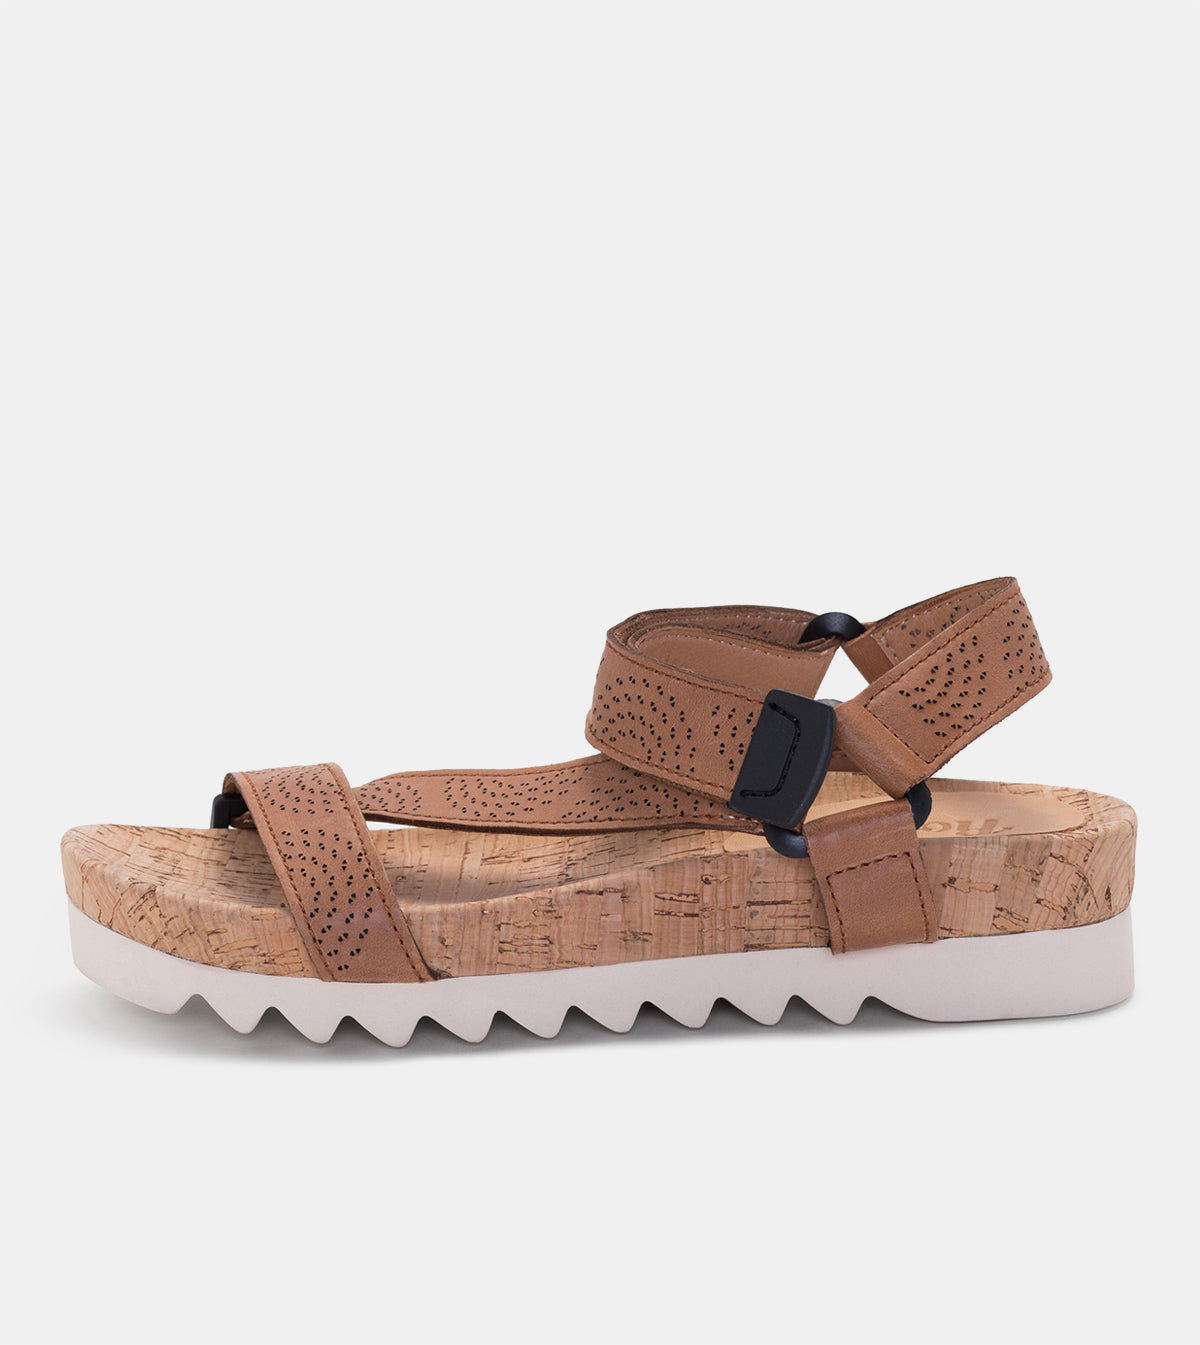 Sandal Tooth Wedge Strap Punch Tan Burnish